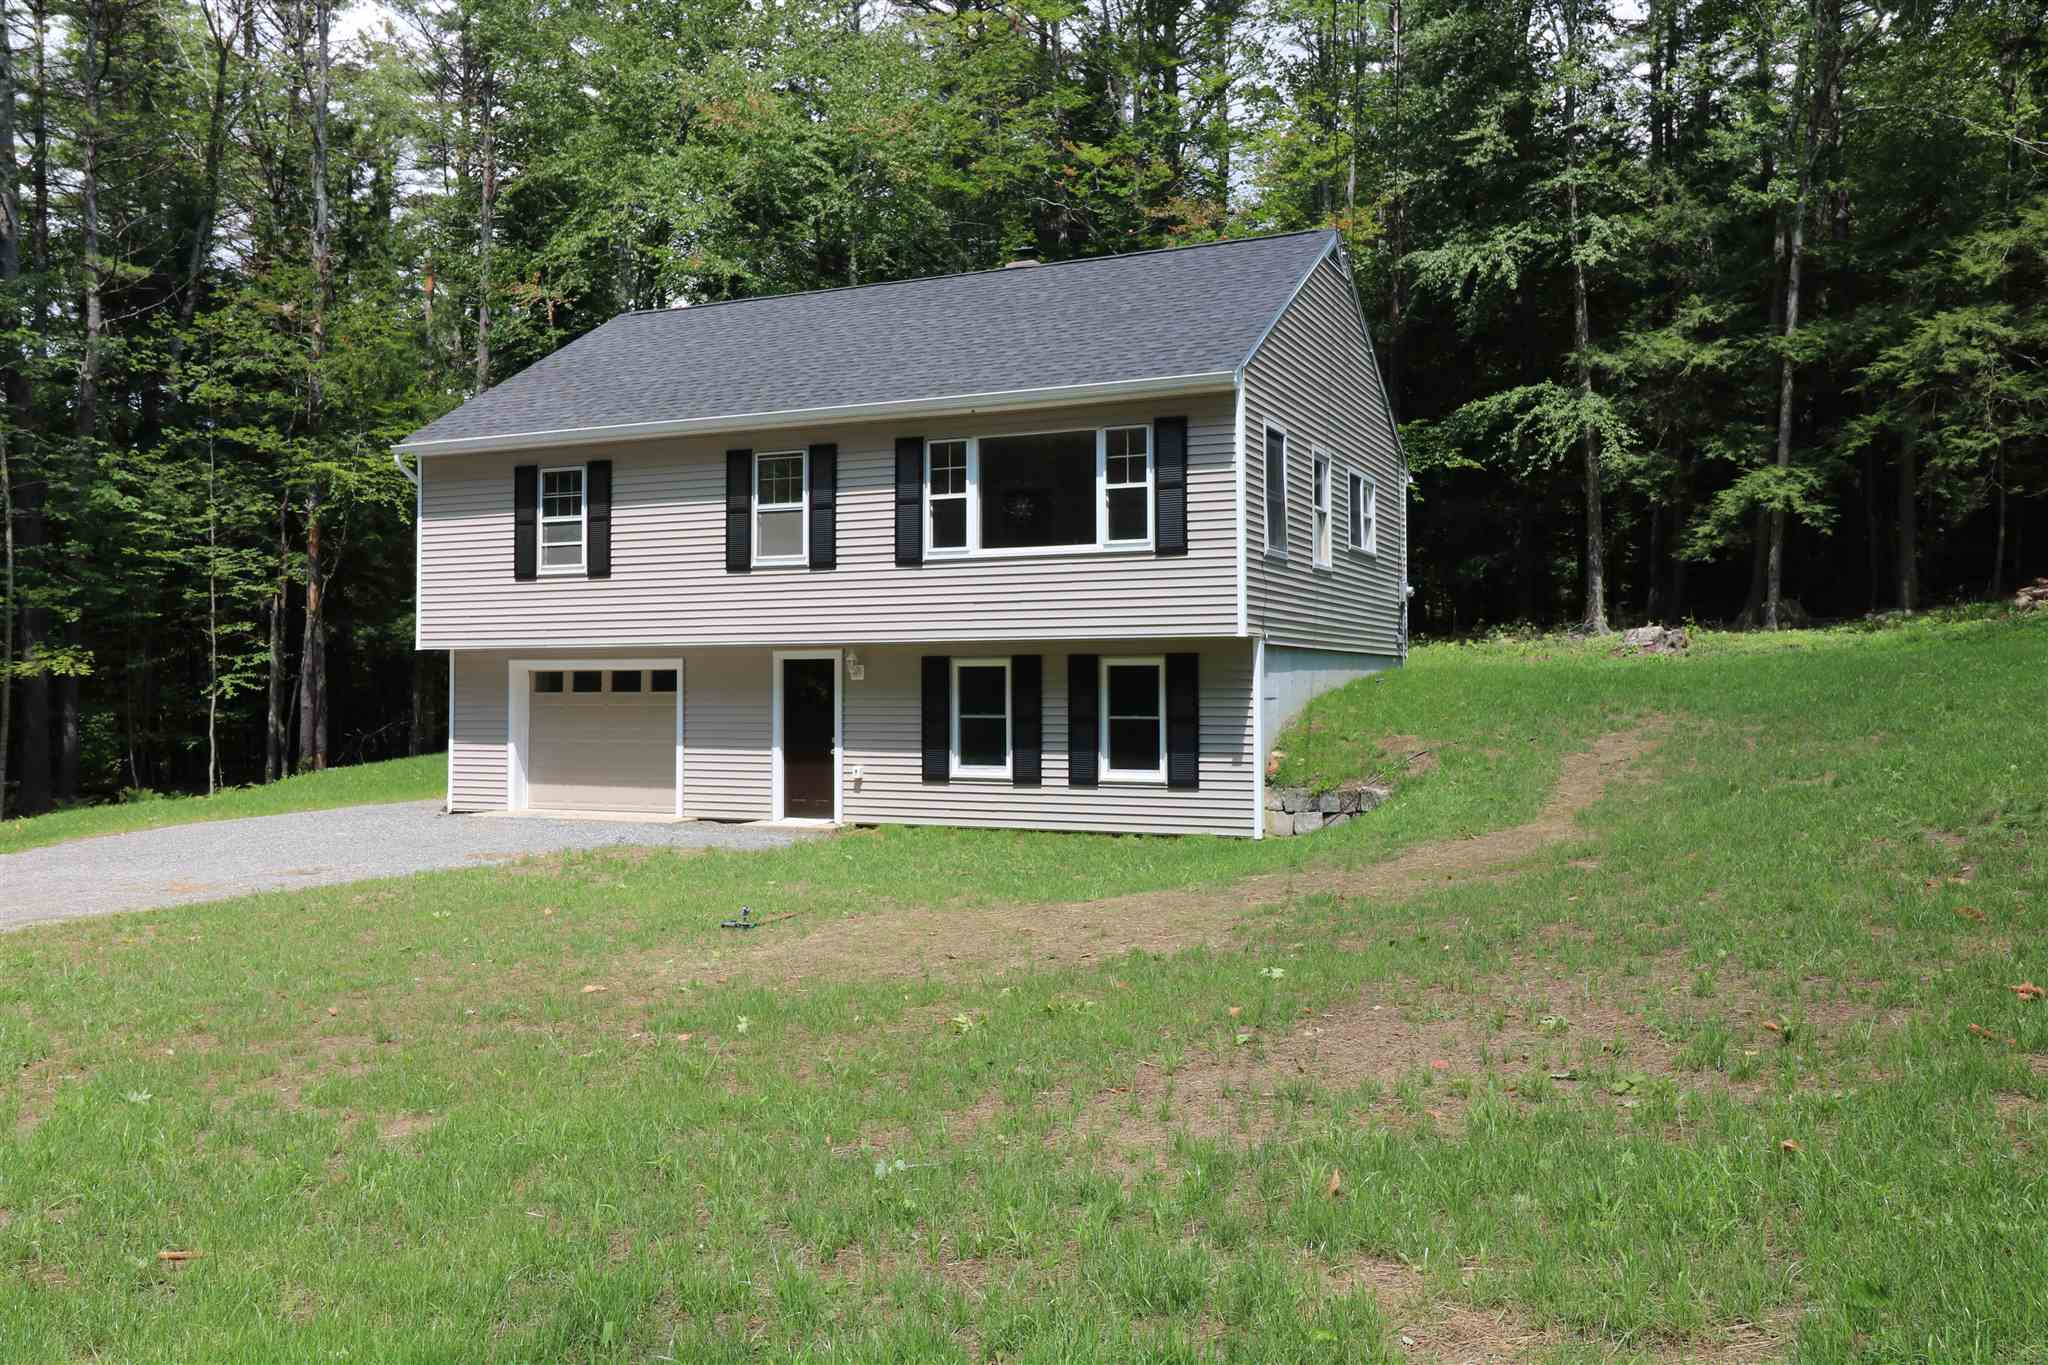 MLS 4821925: 76 Lacy Road, Jaffrey NH